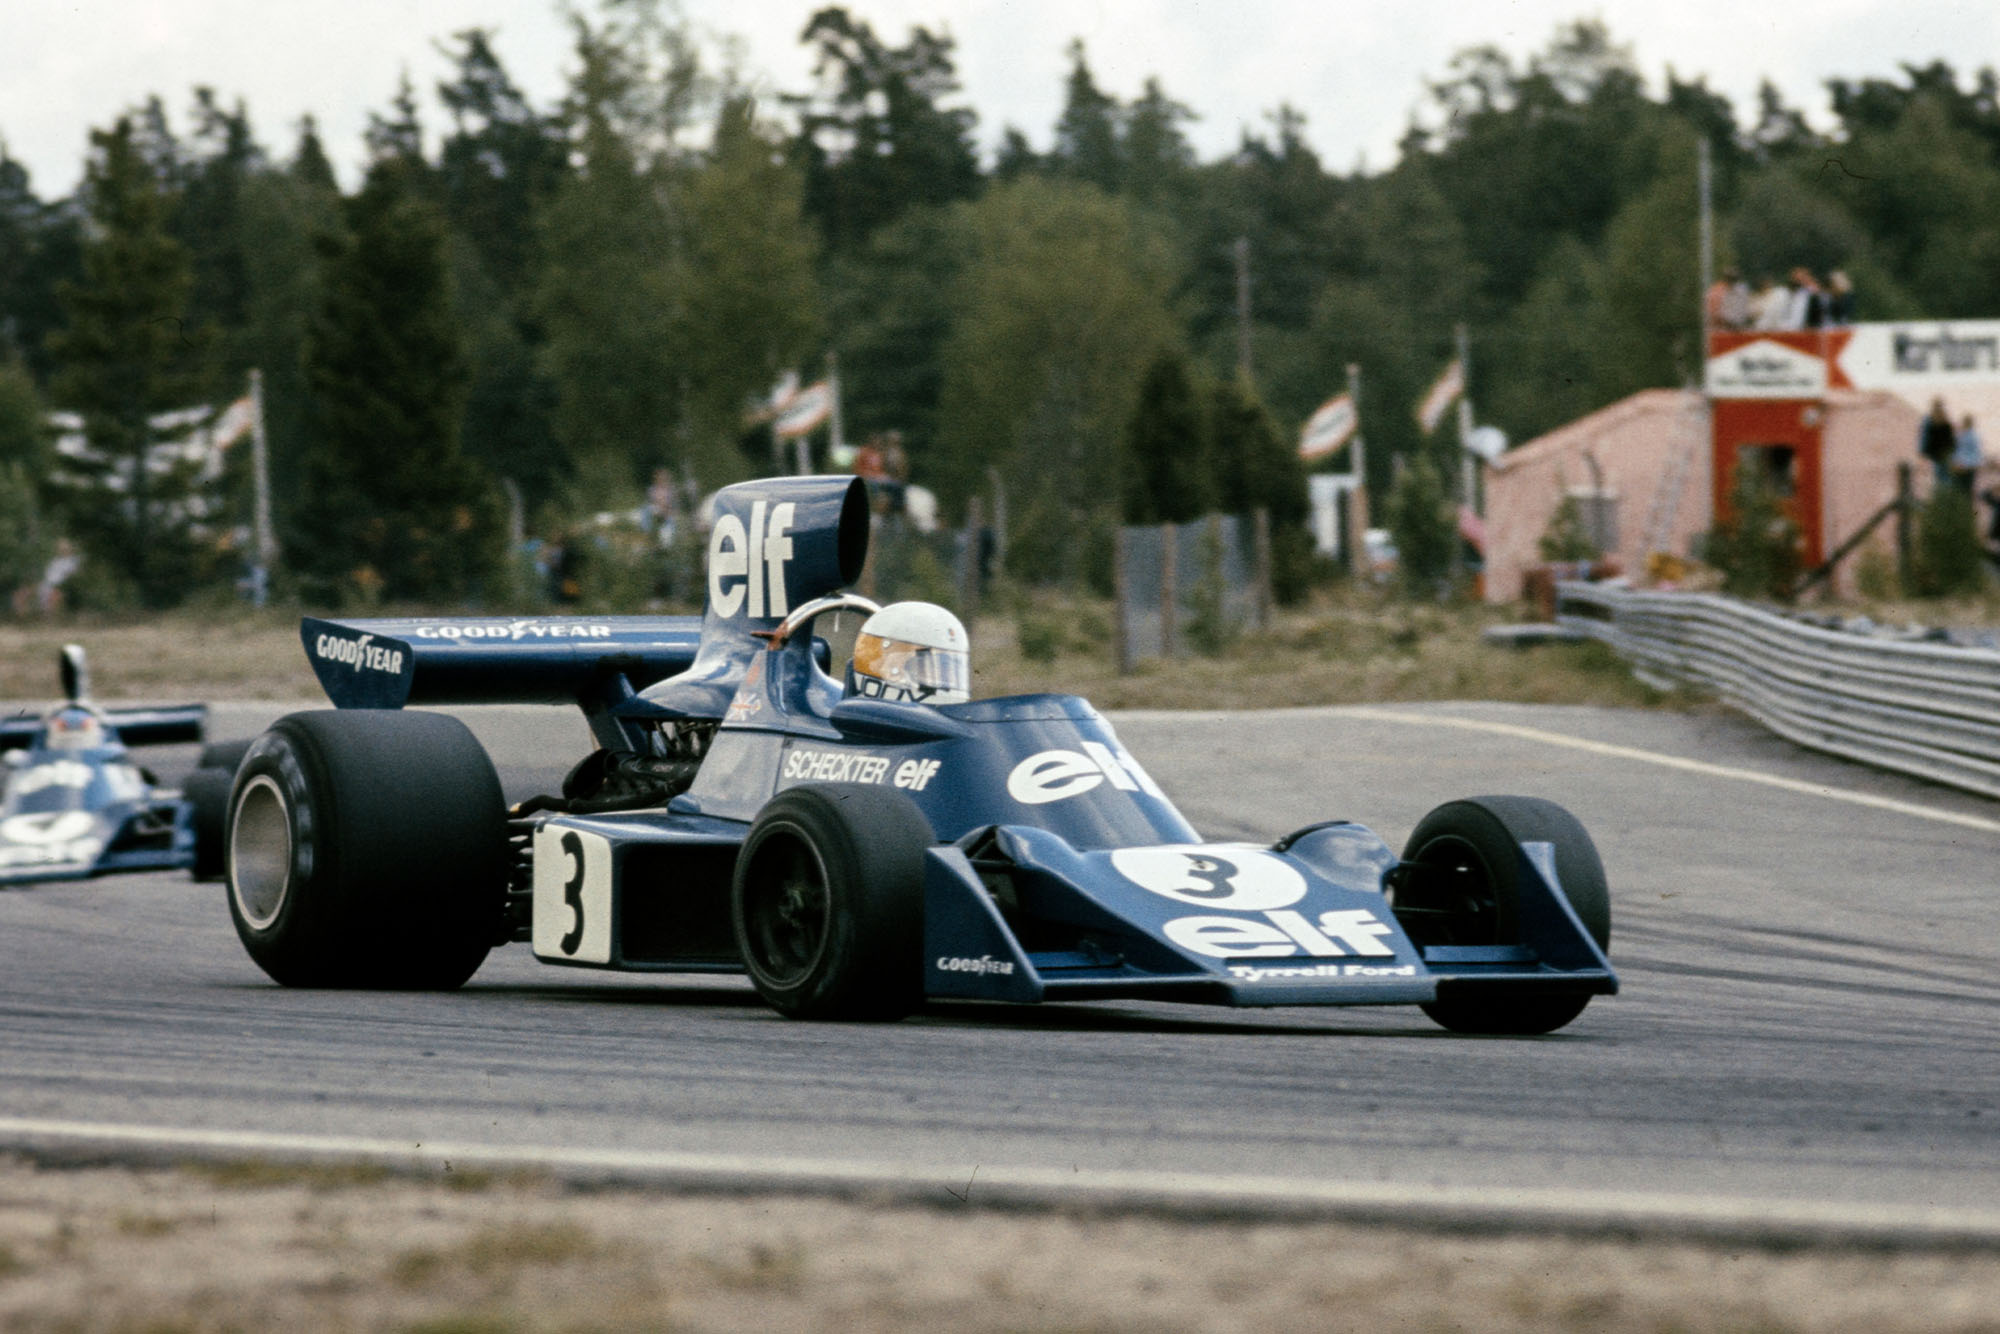 Jody Scheckter on the way to victory for Tyrrell at the 1974 Swedish Grand Prix.